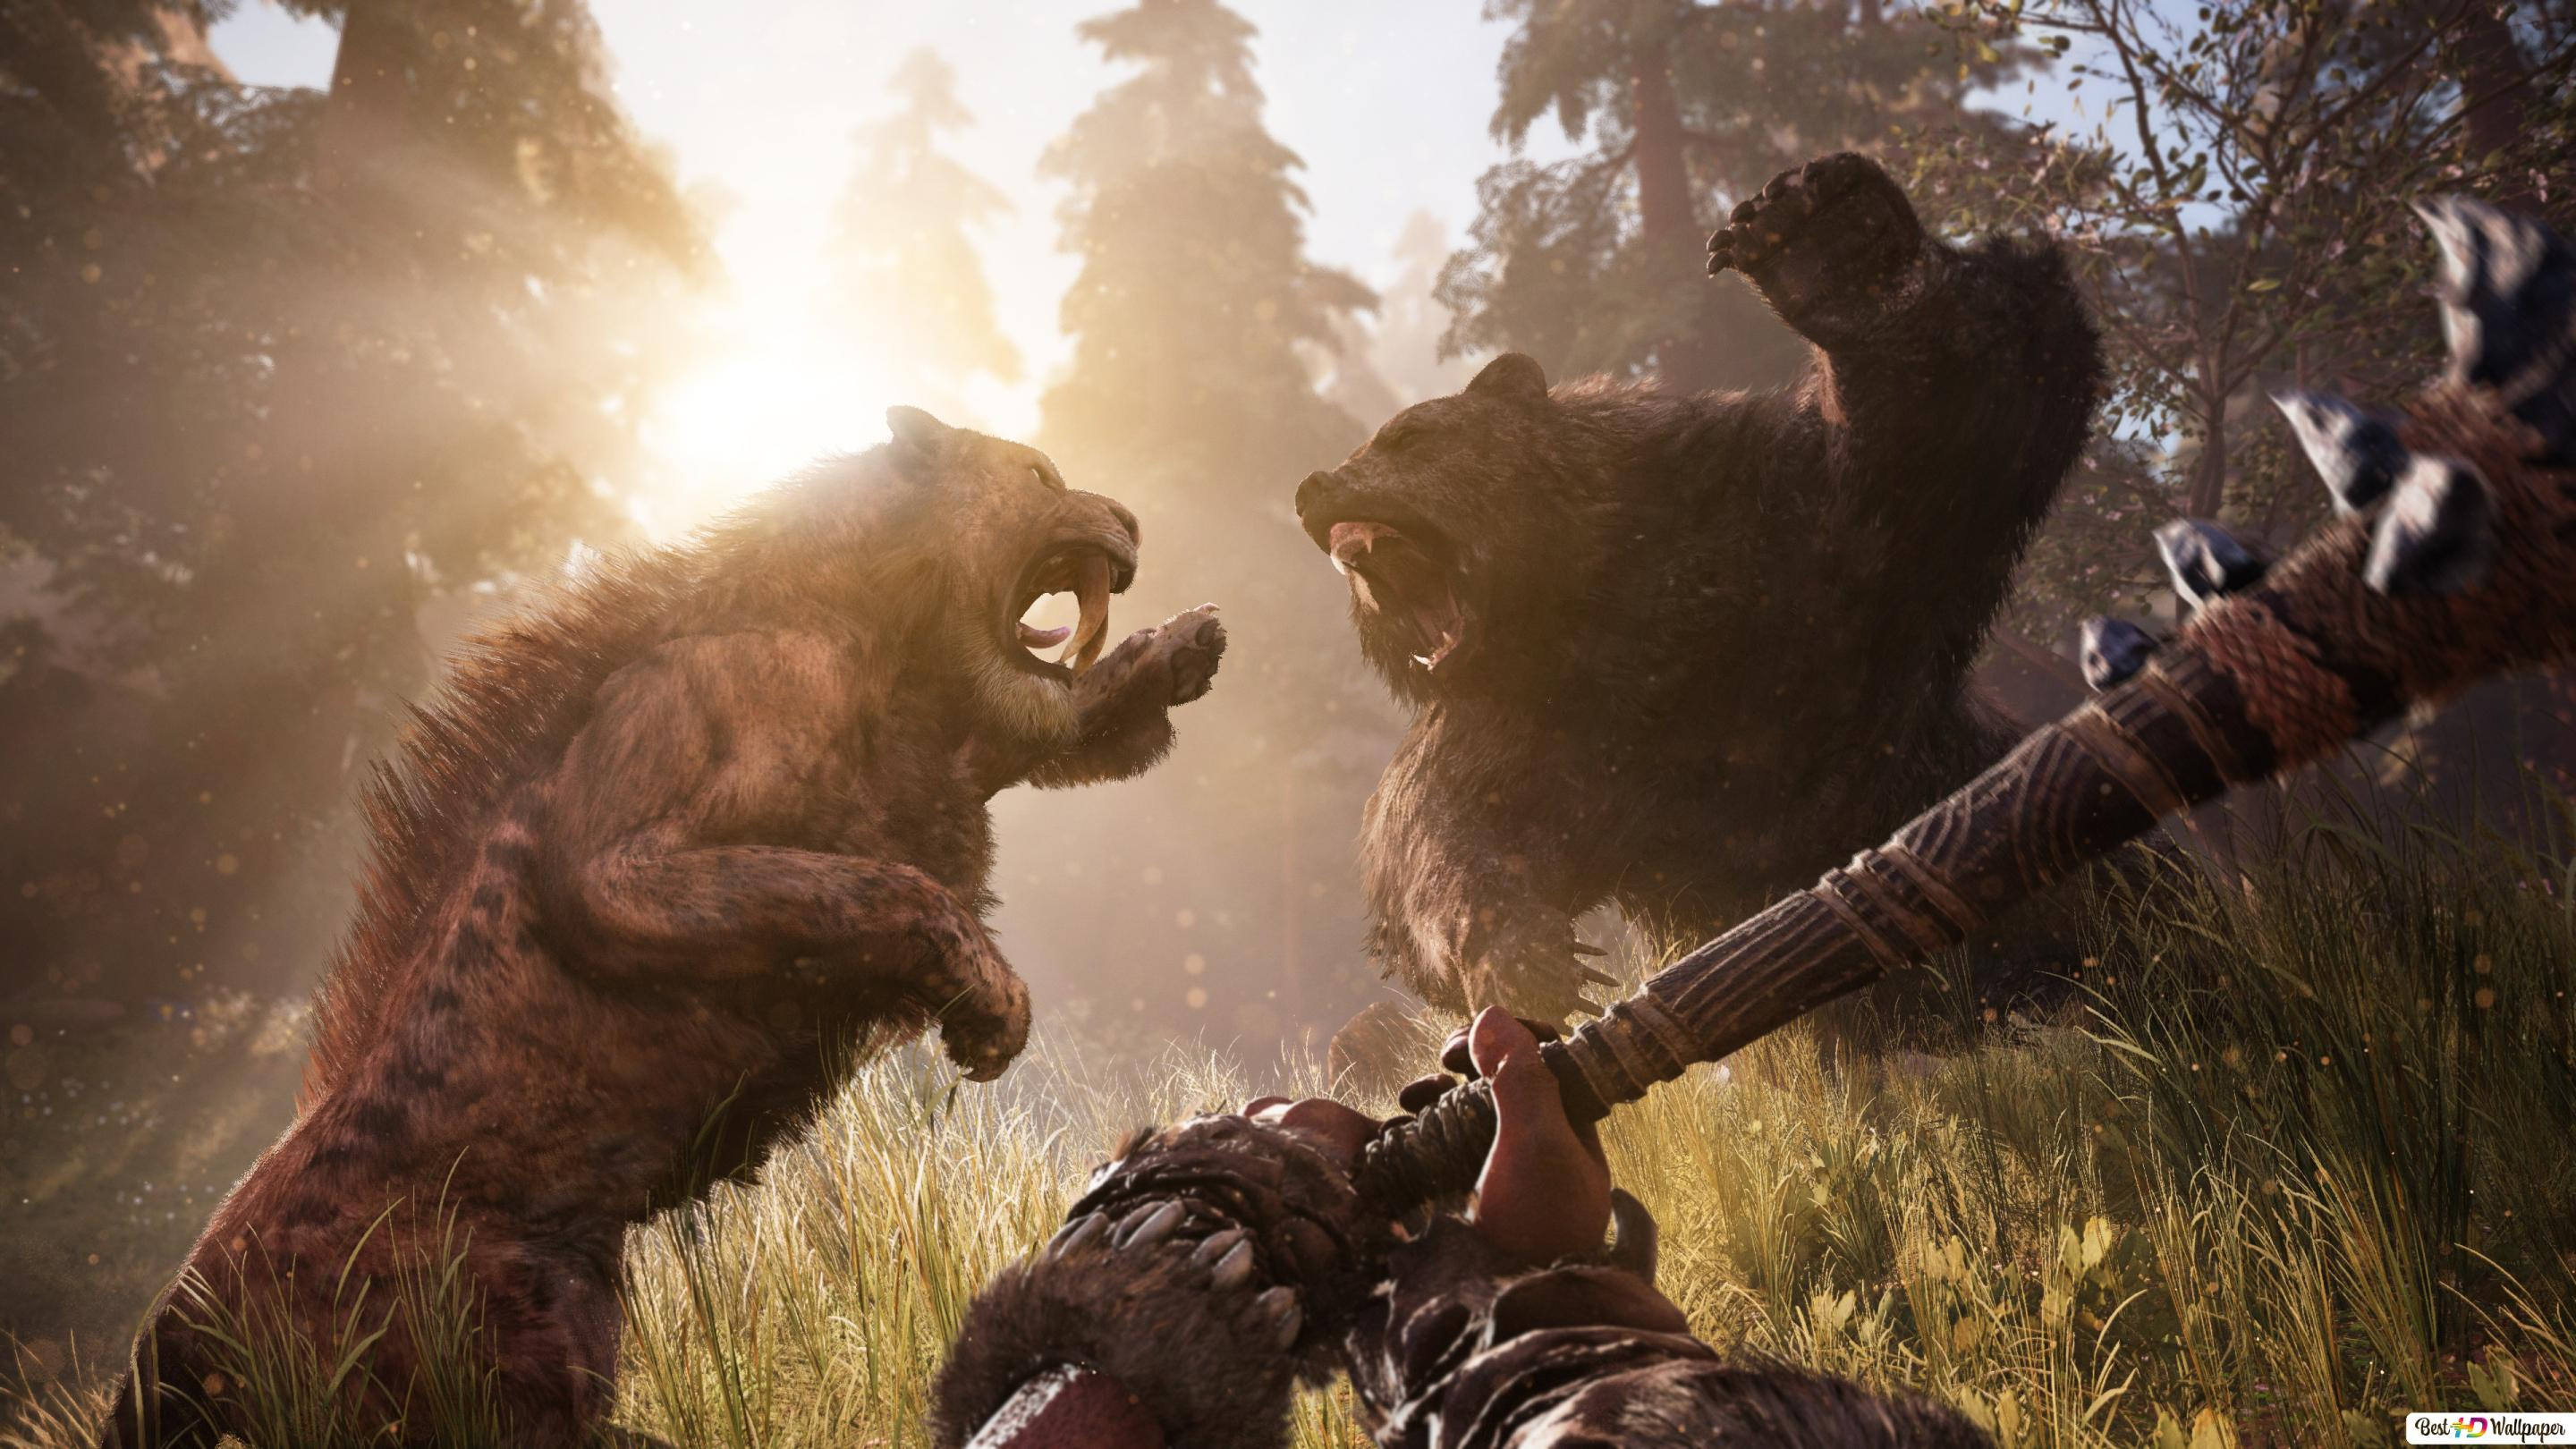 Far Cry Primal Hd Wallpaper Download